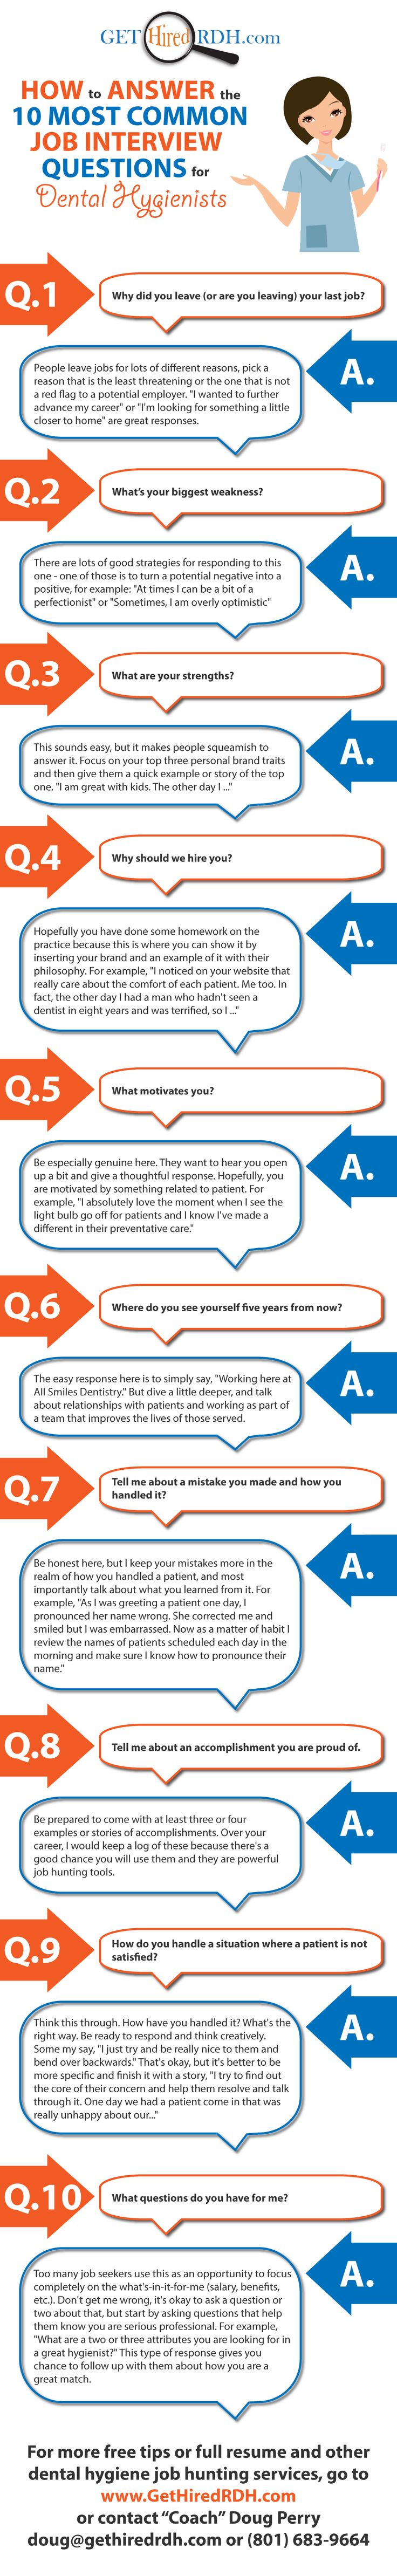 17 best ideas about common interview questions how to answer the 10 most common interview questions for dental hygienists get more at gethiredrdh